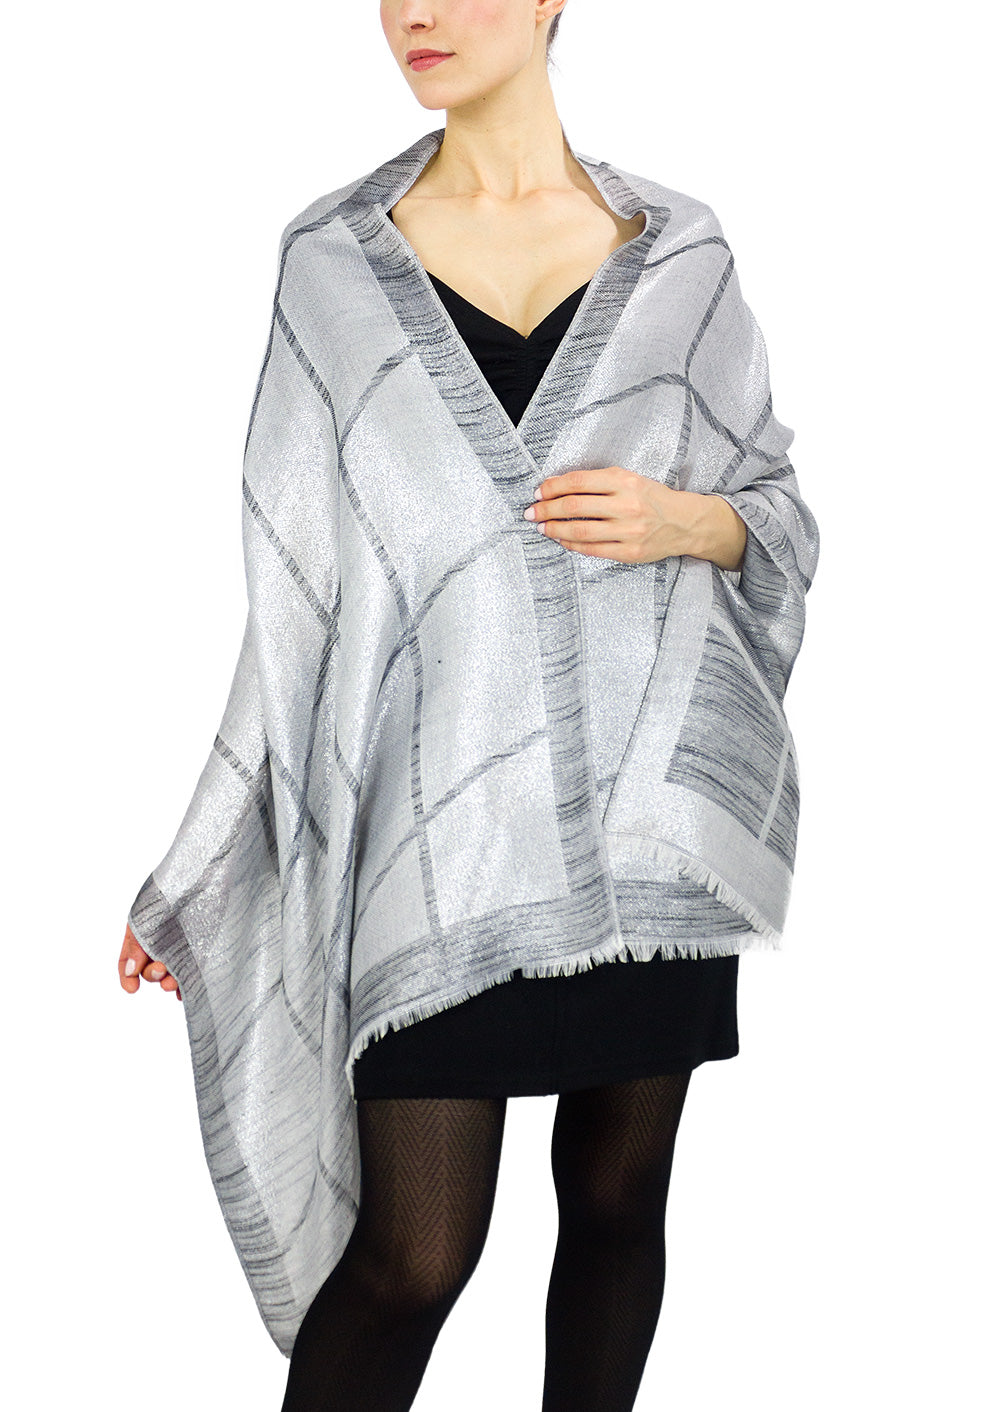 Metallic Striped Dressy Shawl - Just Jamie